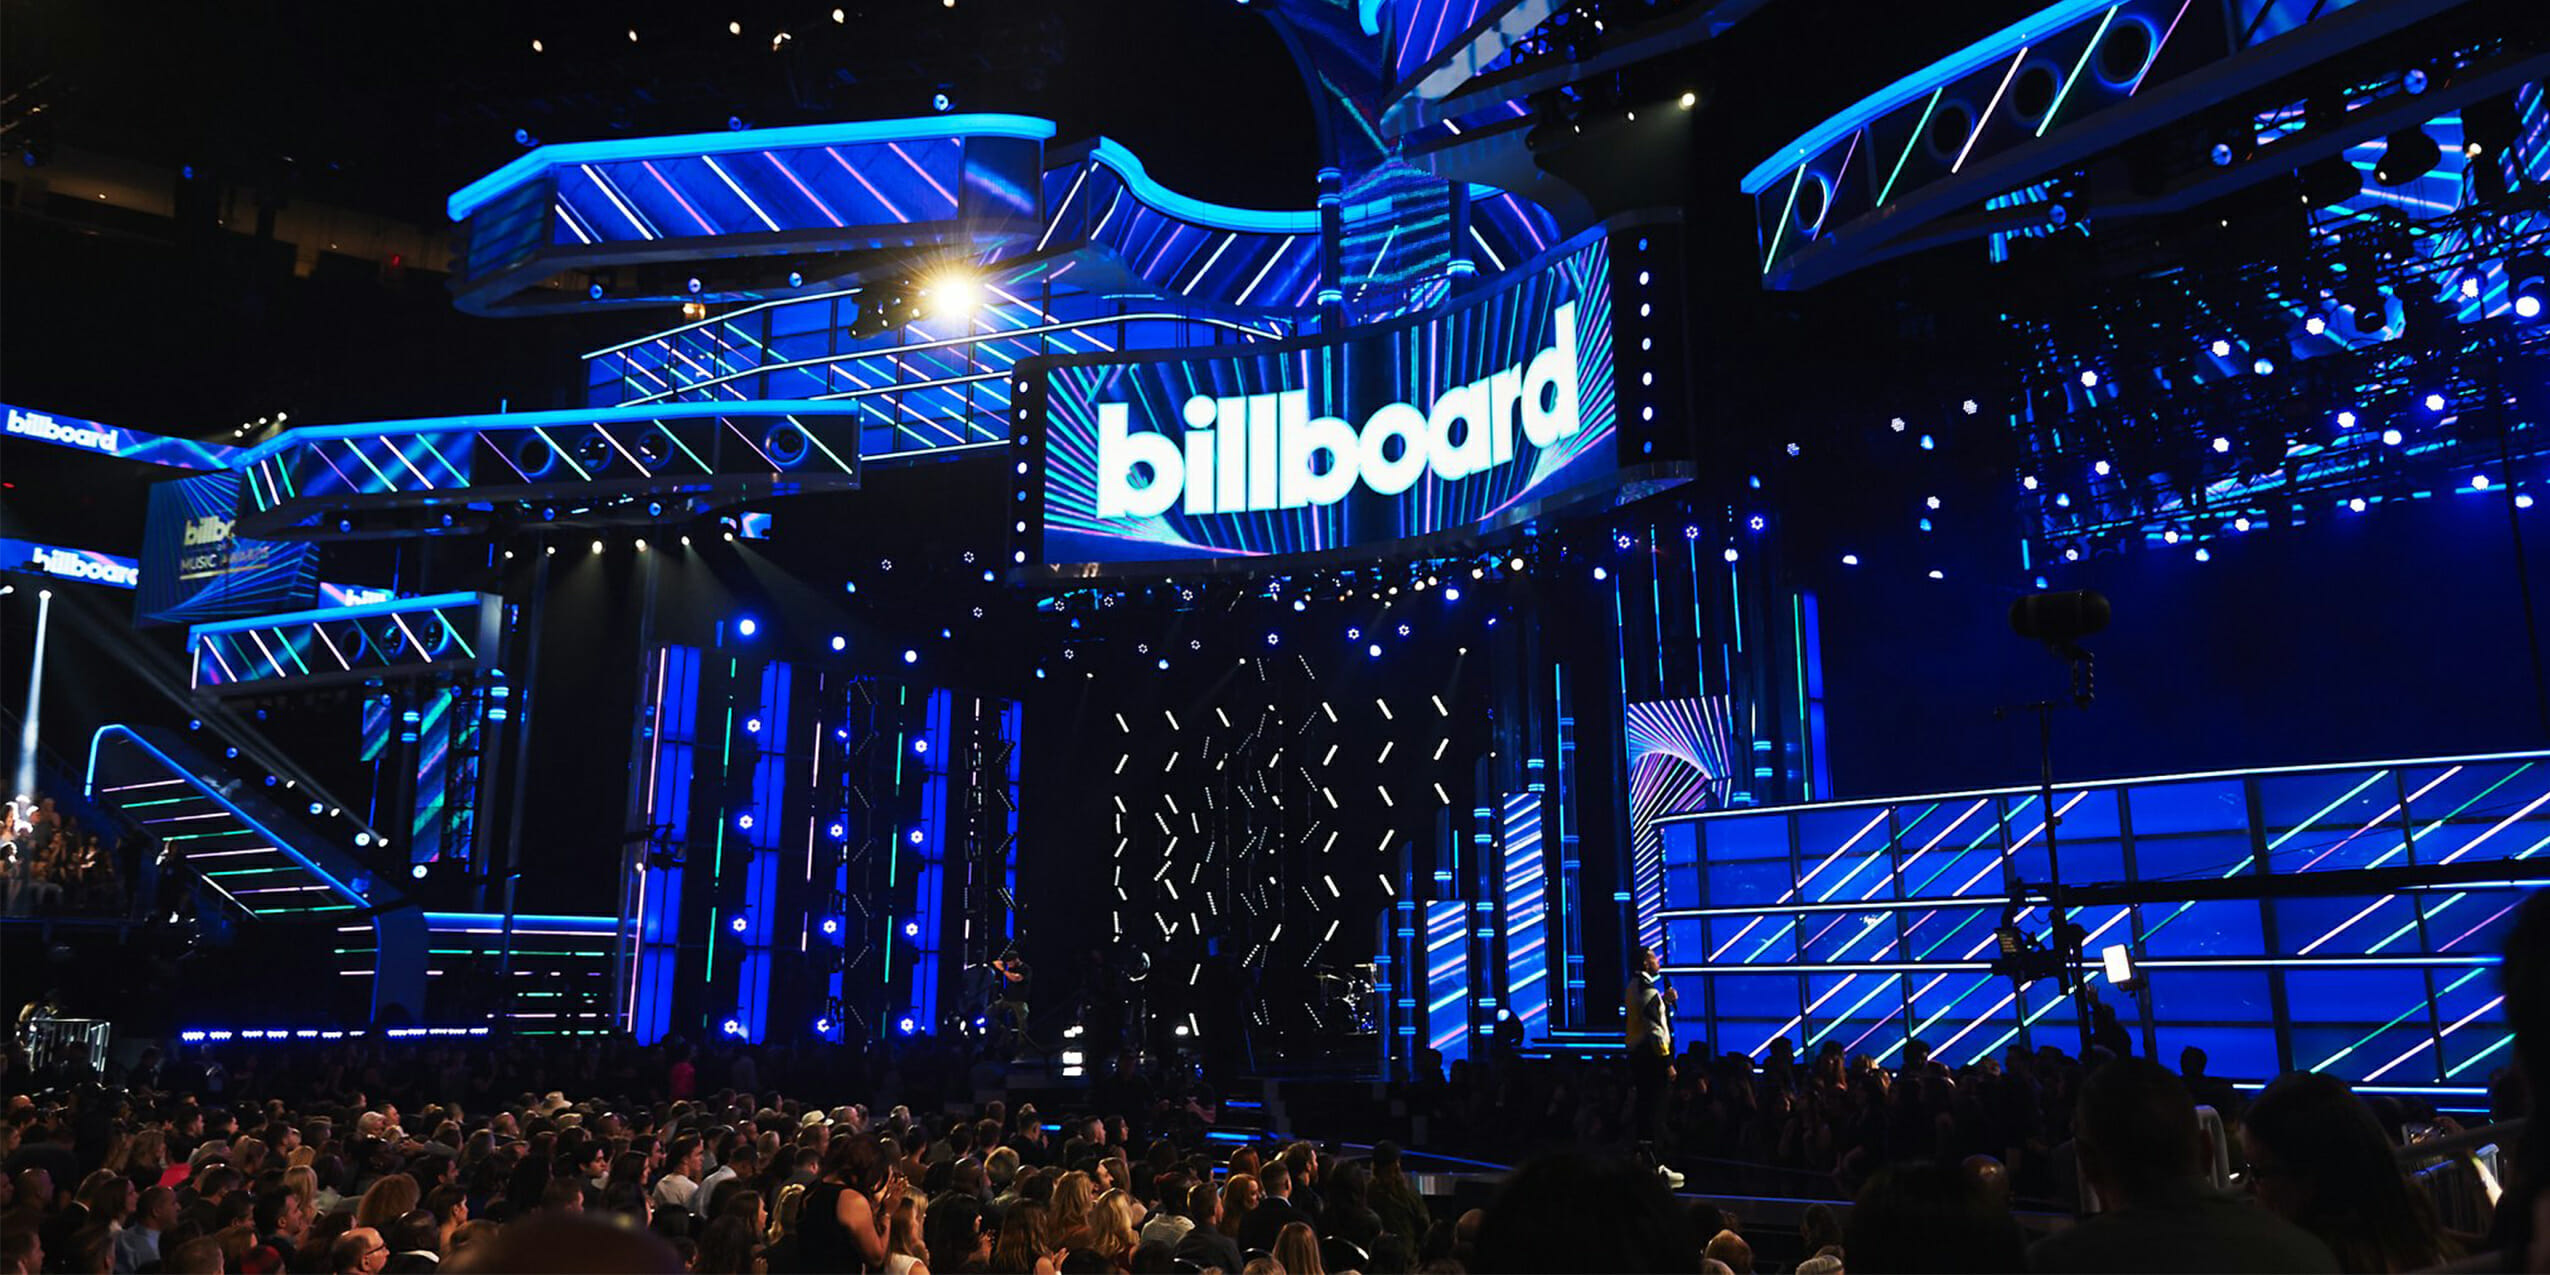 How to stream the 2019 Billboard Music Awards for free